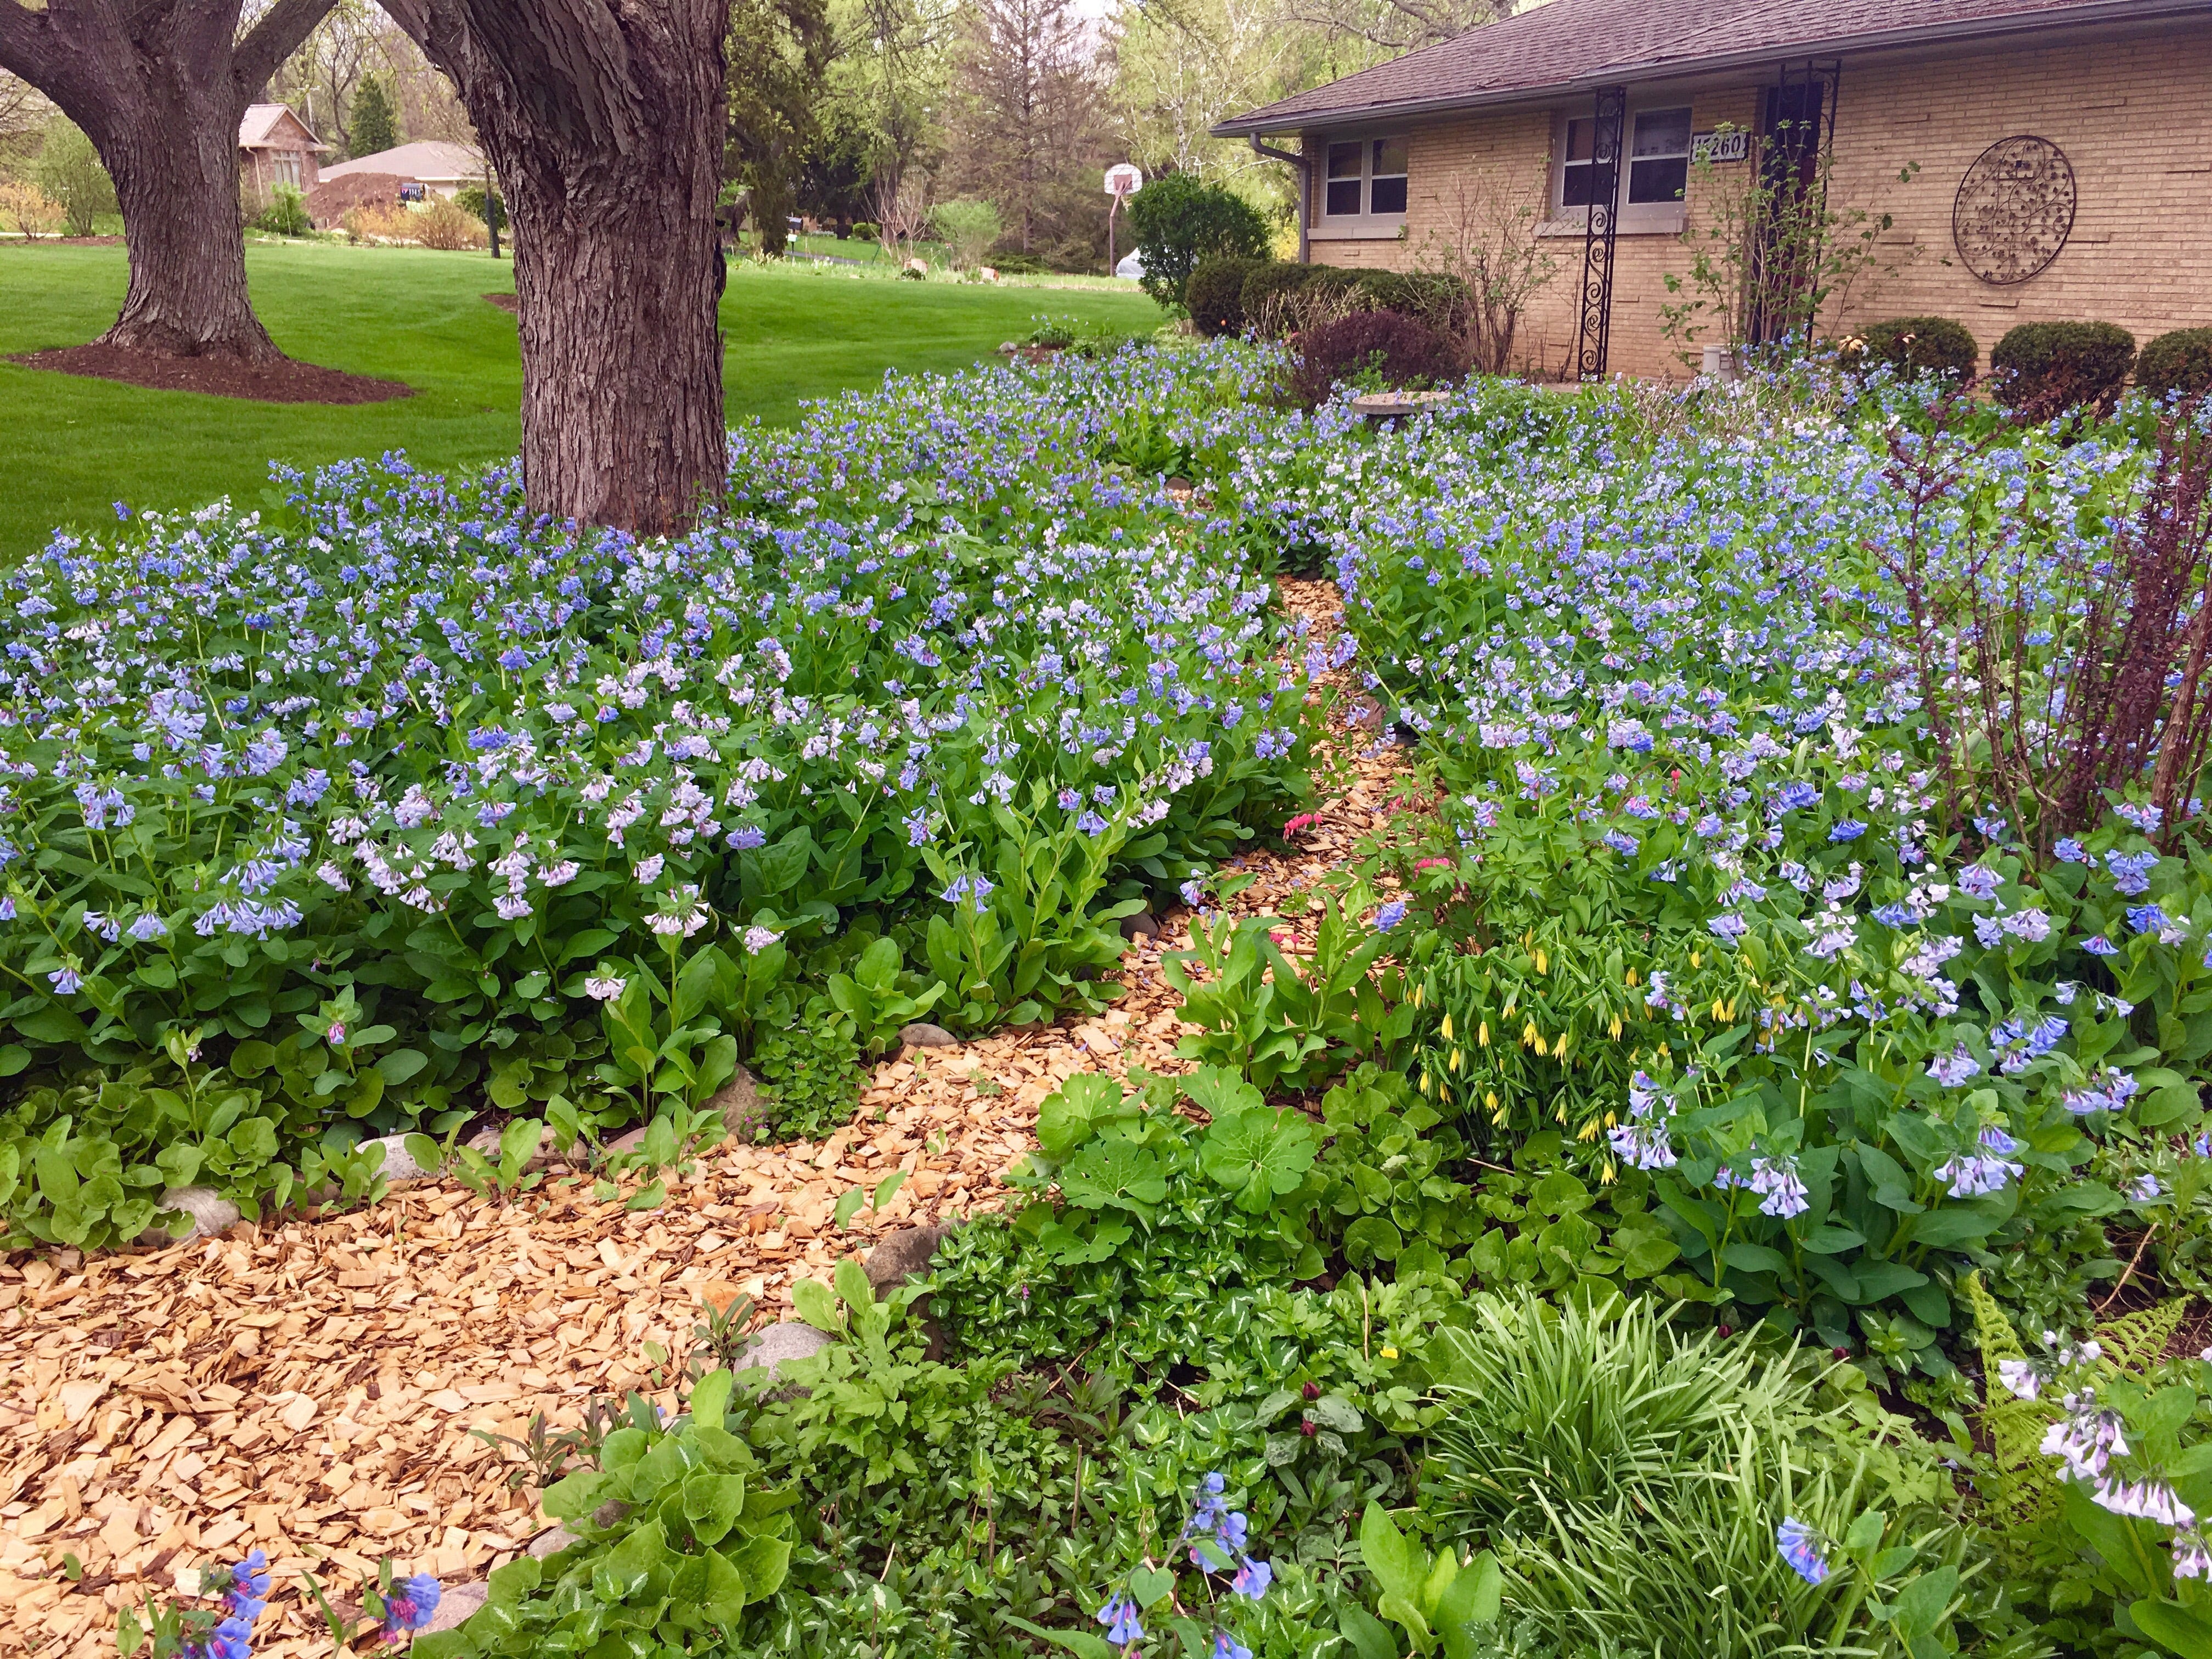 Large patches of Virginia Bluebells bloom in the yard.